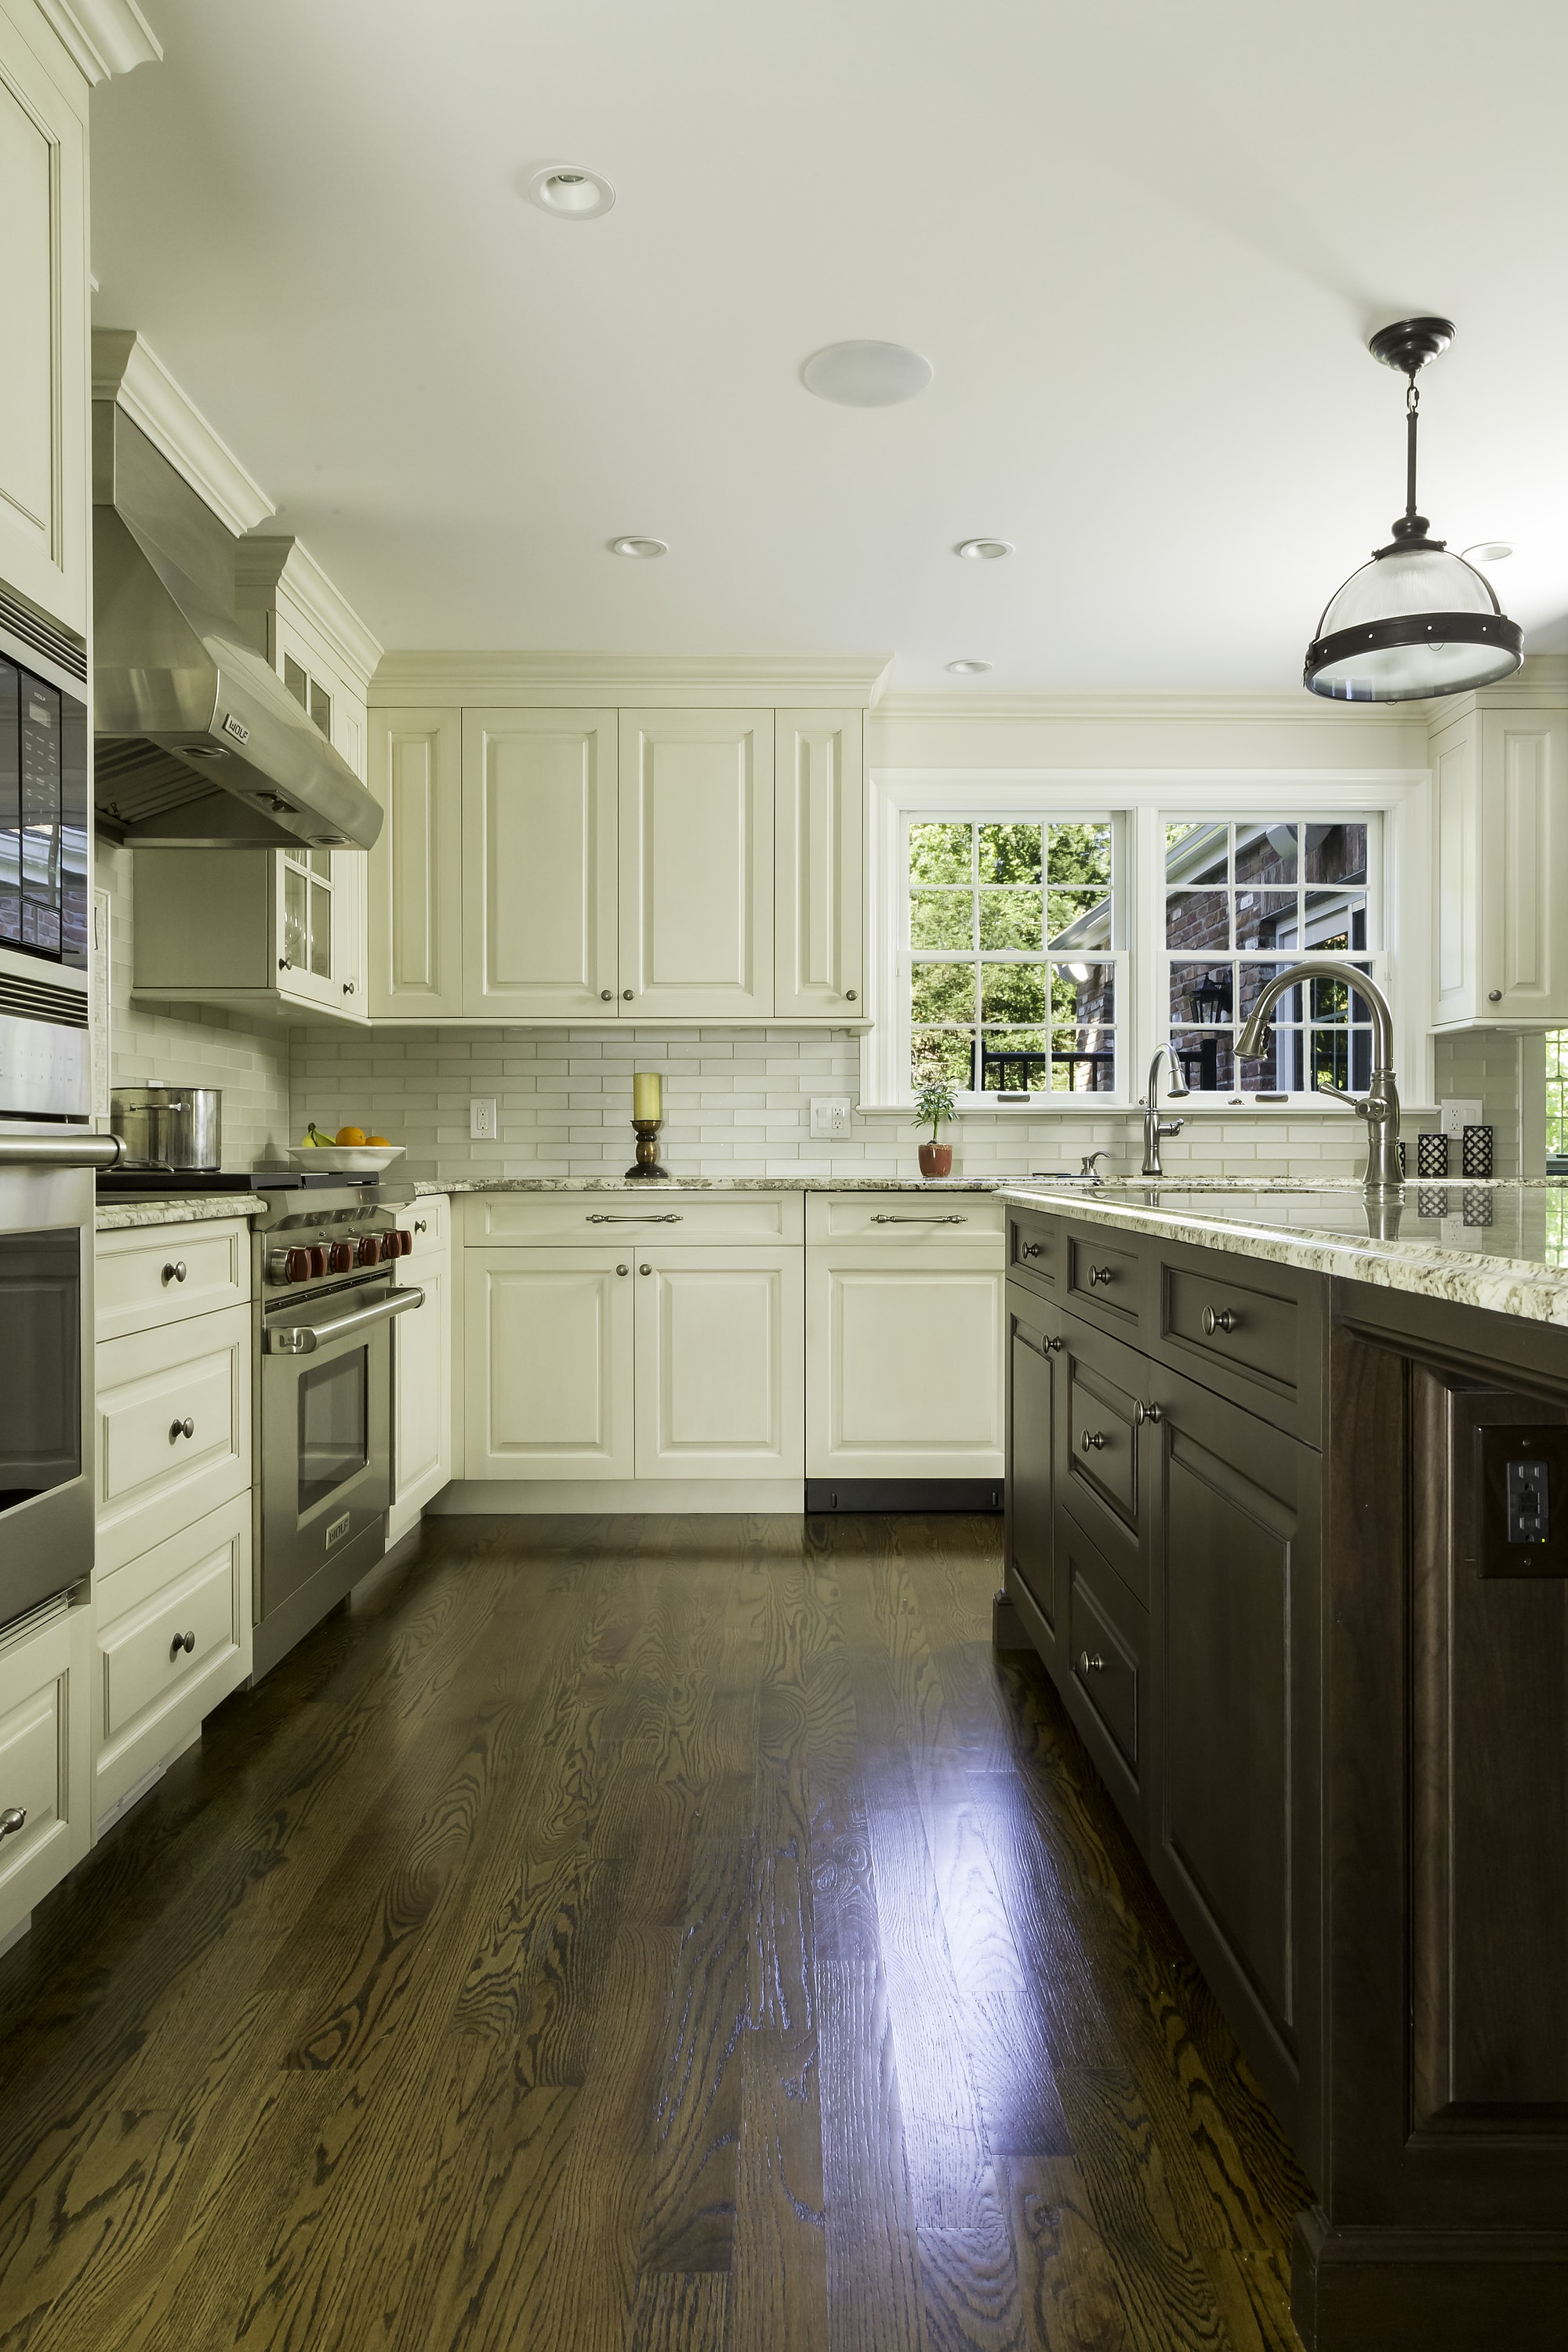 Traditional style kitchen with corner upper cabinets